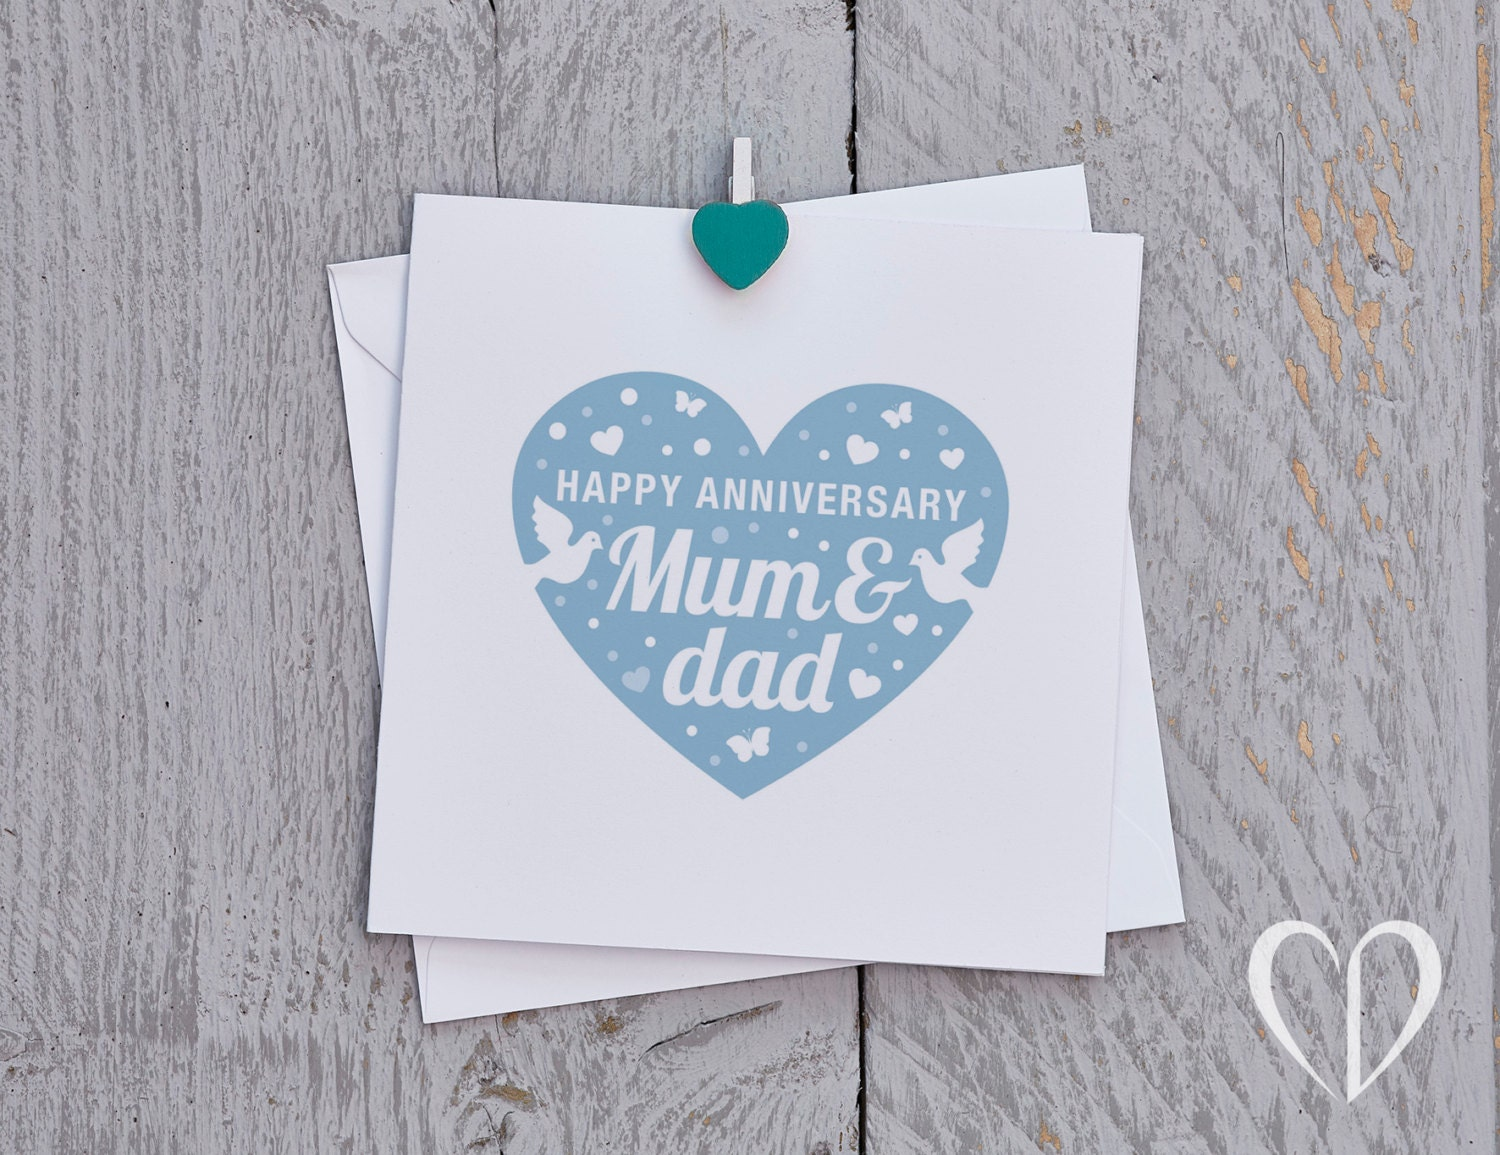 Happy anniversary mum and dad card blue parents anniversary zoom kristyandbryce Choice Image